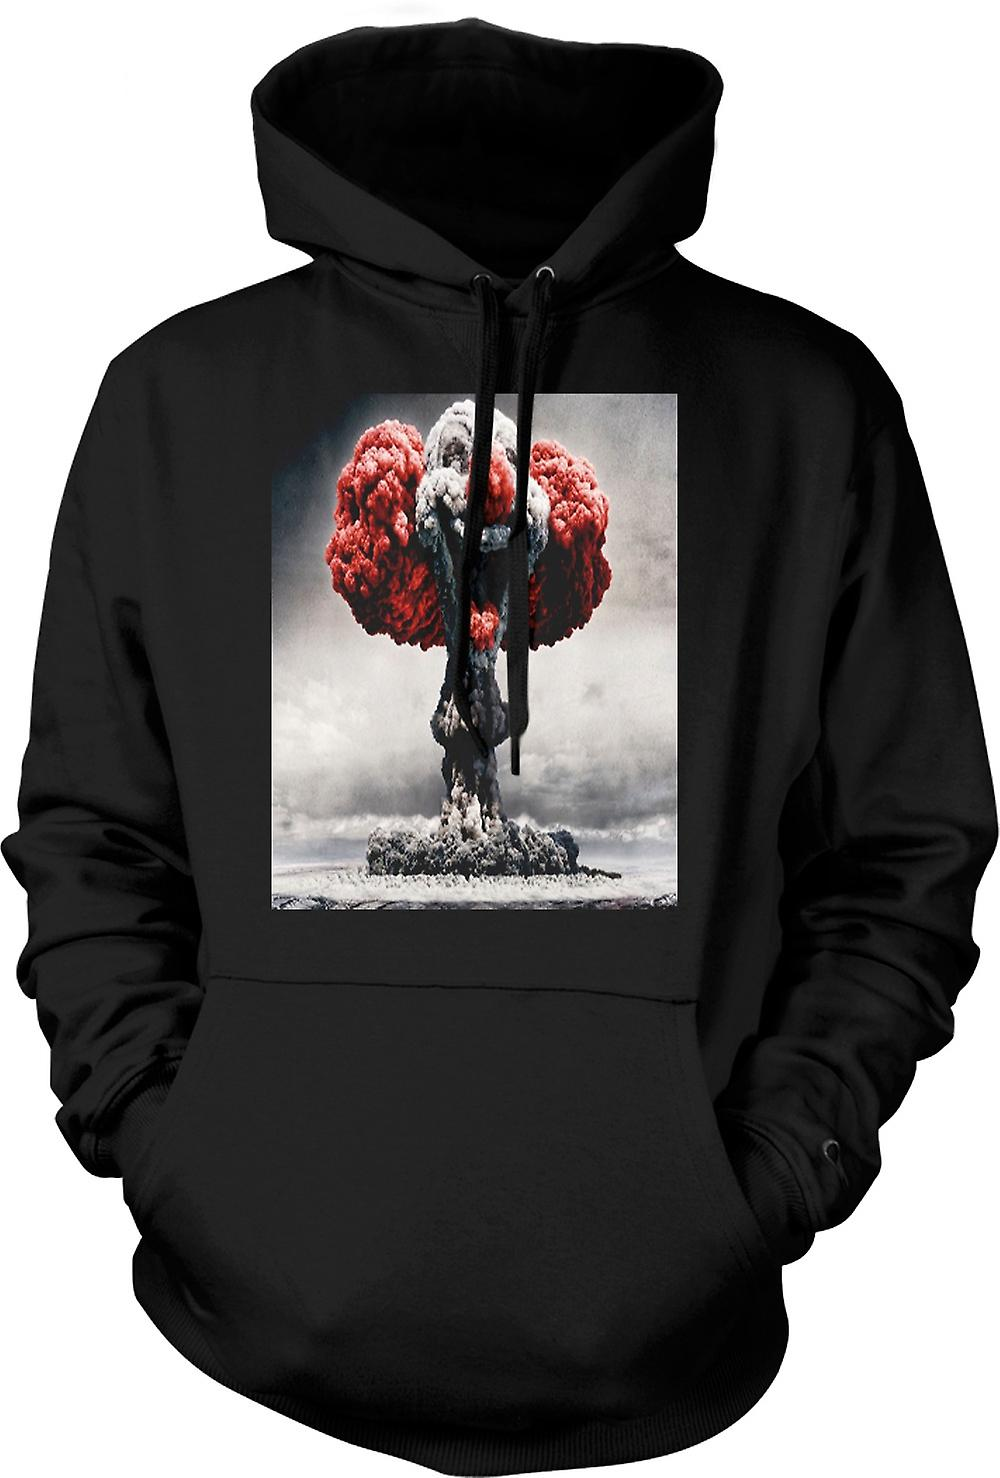 Mens Hoodie - Nuclear Explosion Clown Face